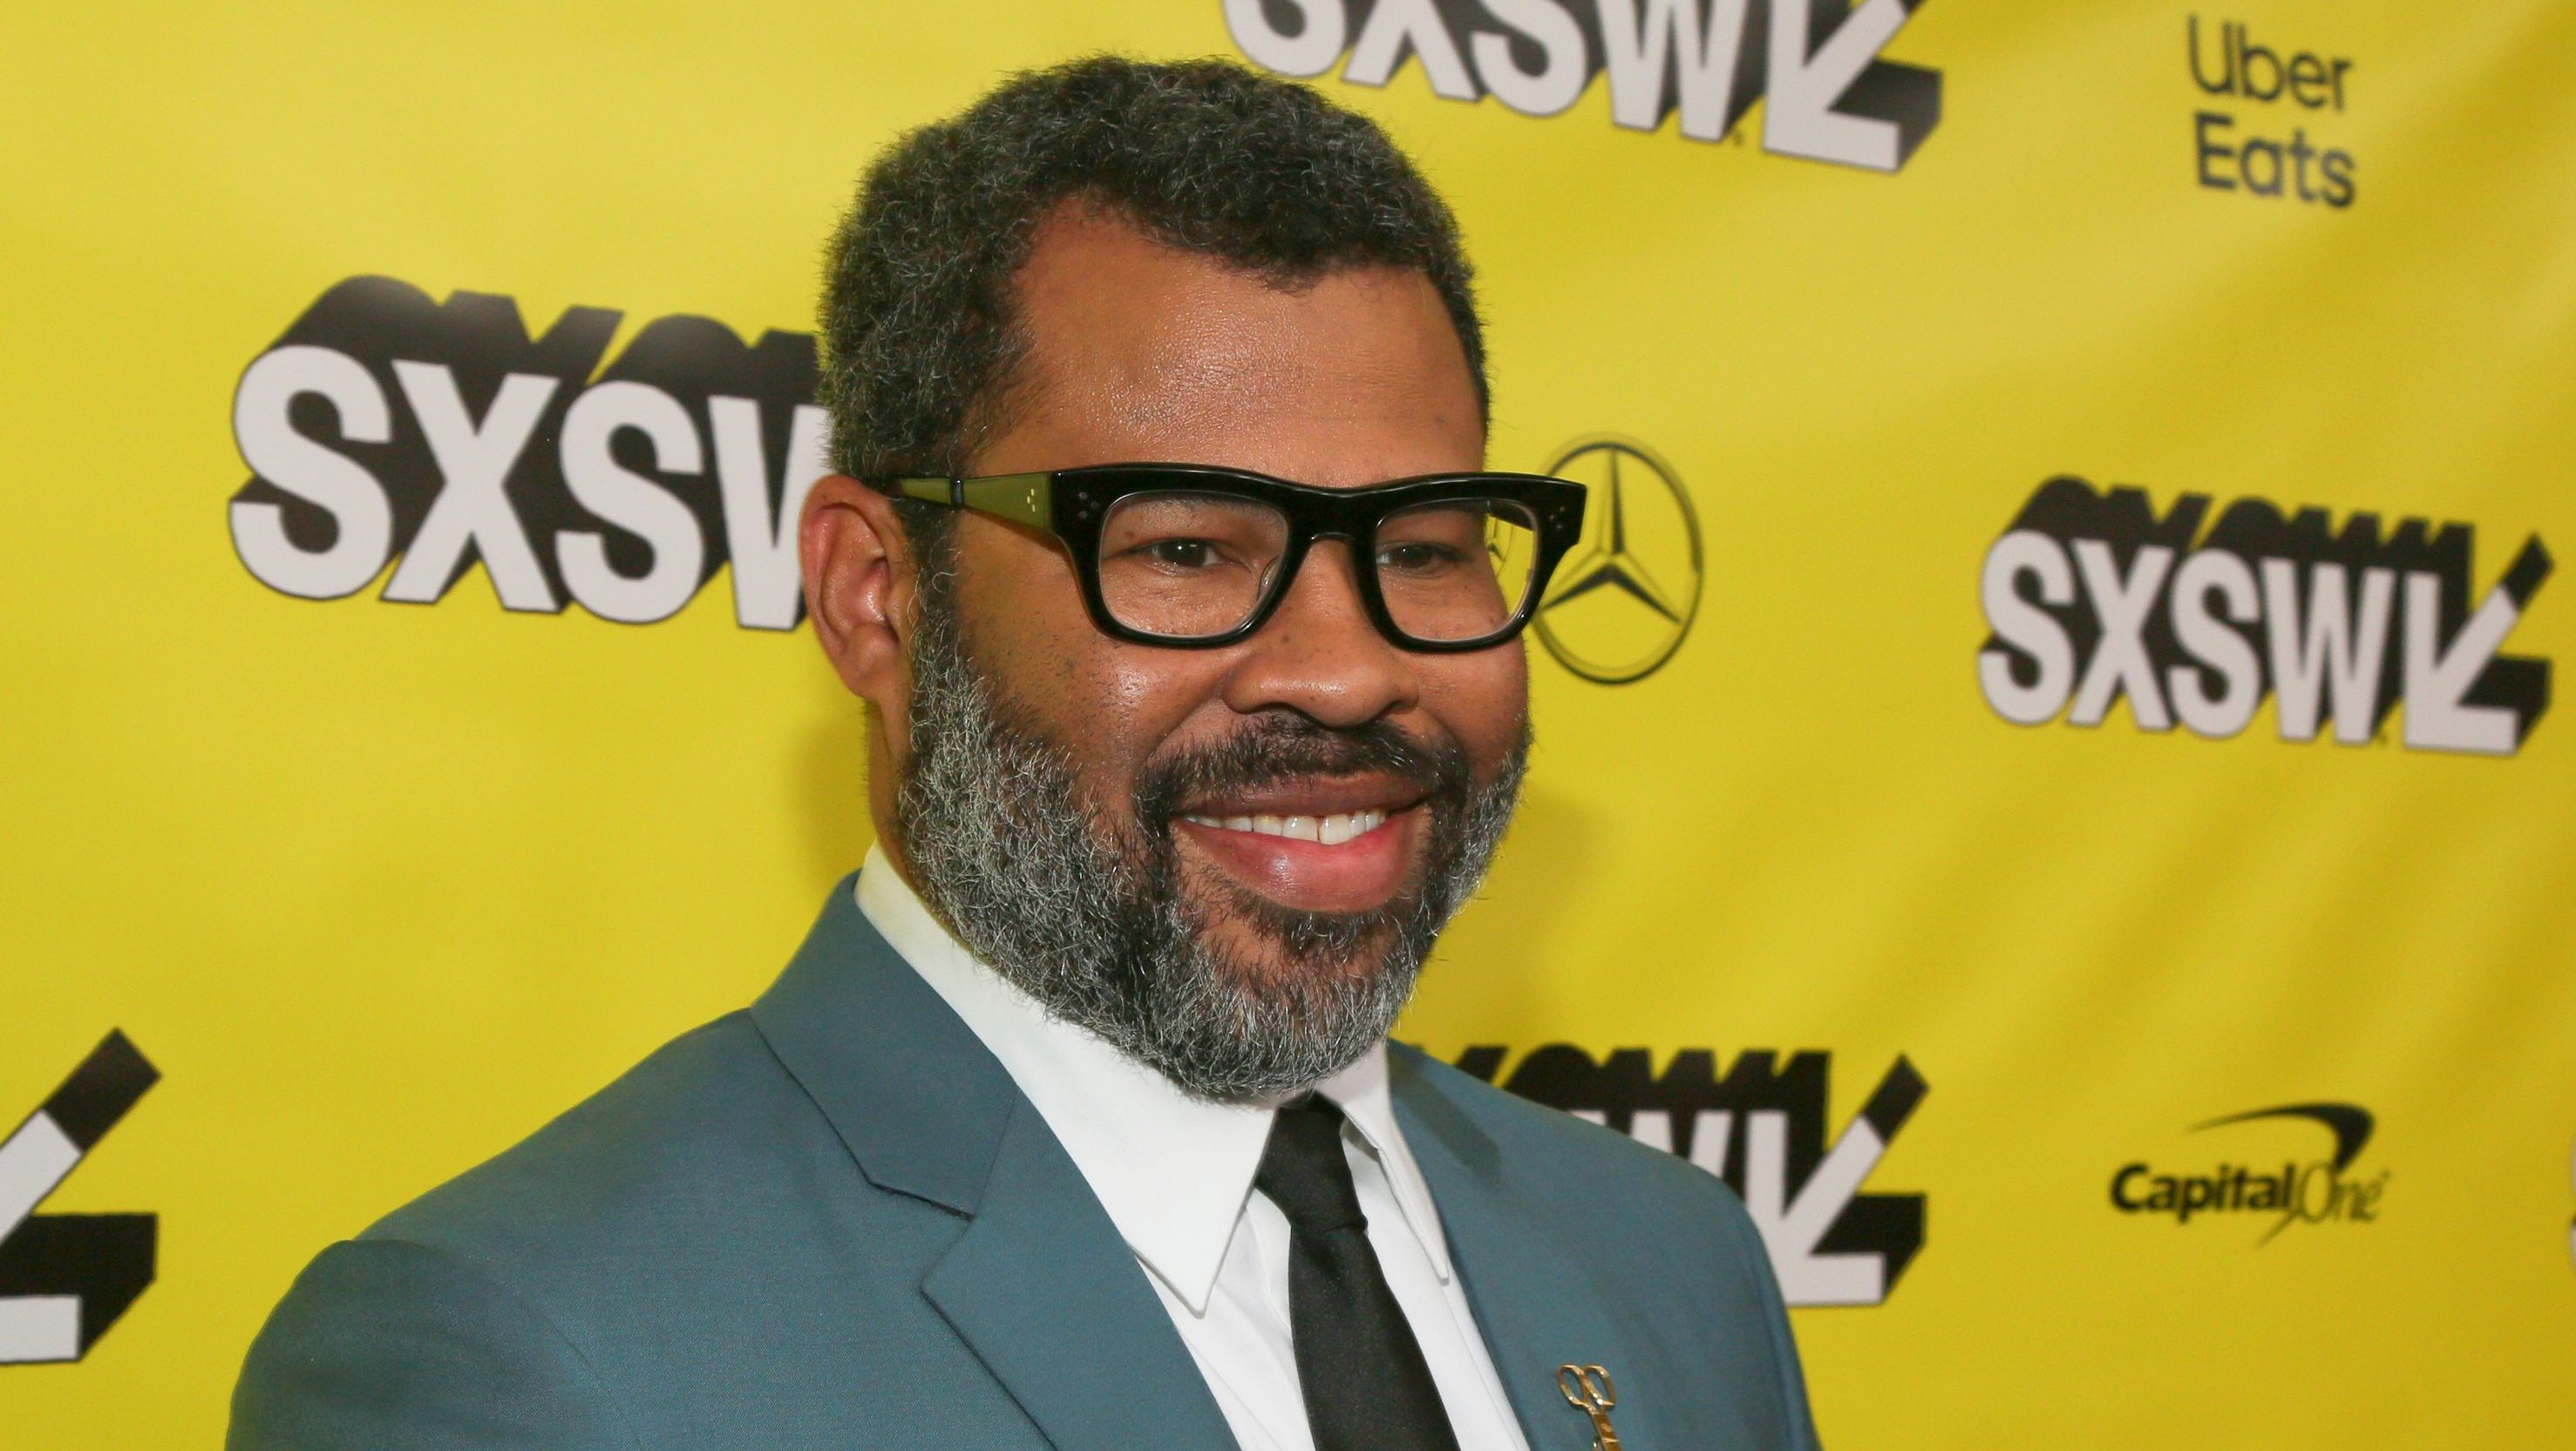 Jordan Peele is not the next Spielberg or Hitchcock. He's the first Jordan Peele